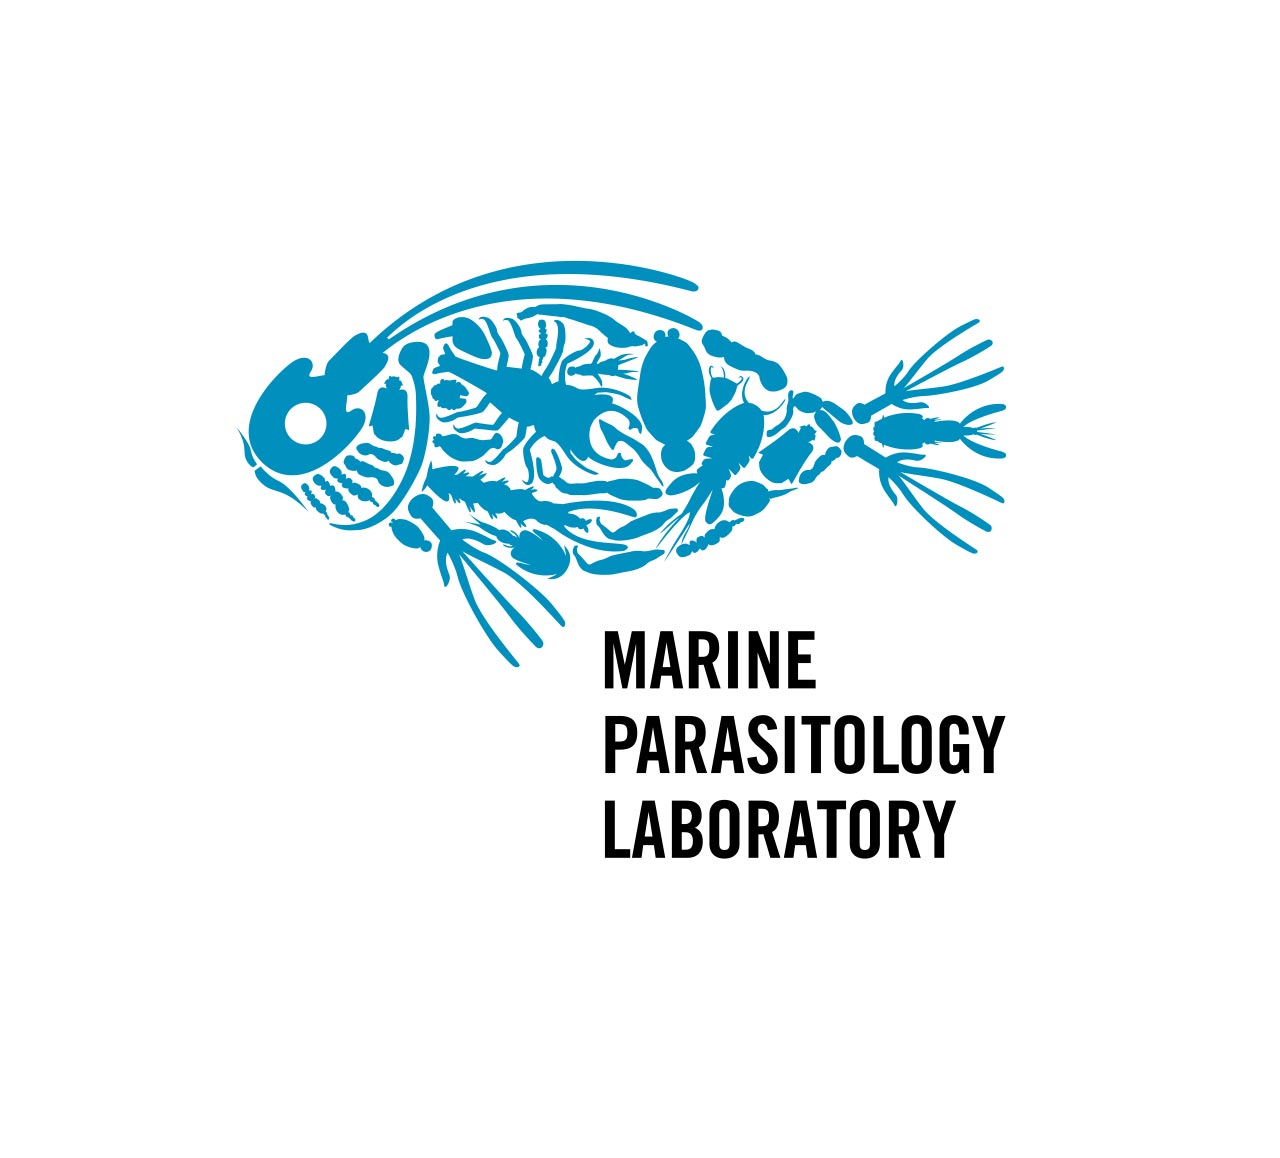 Marine Parasitology Laboratory